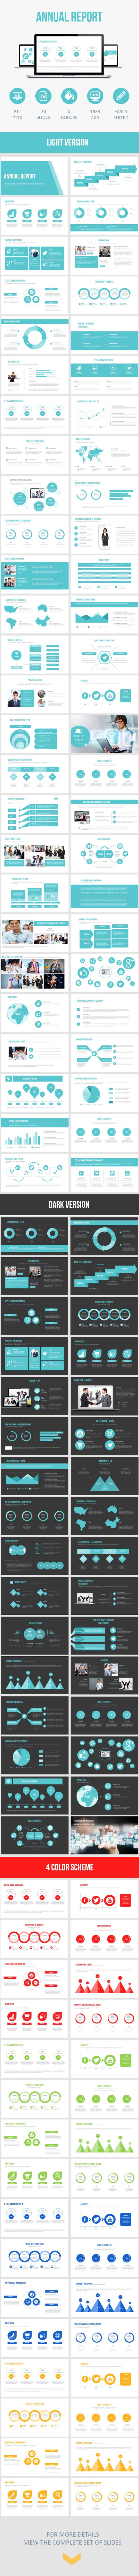 Annual Report (Powerpoint Templates)